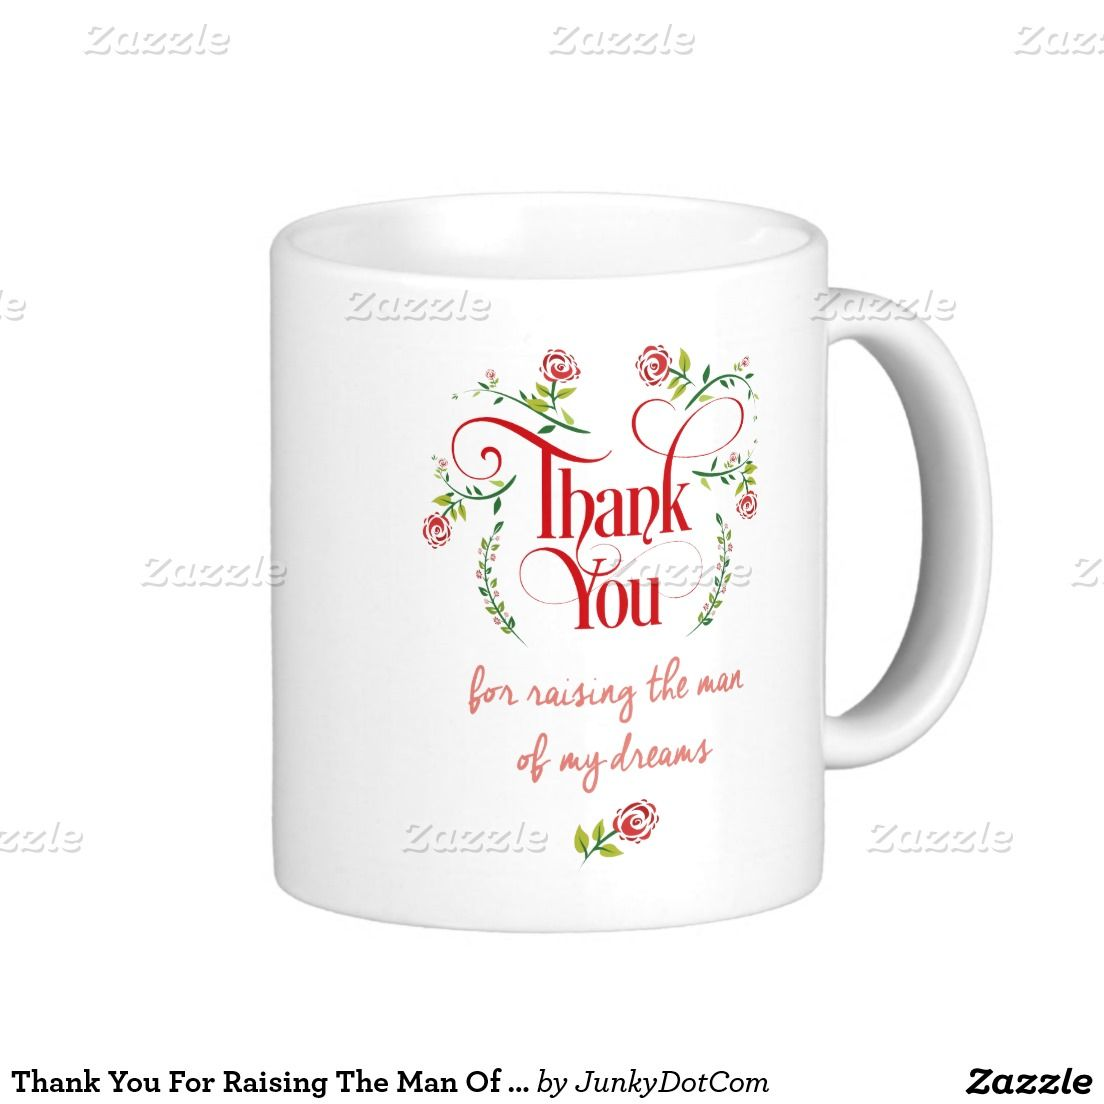 Thank You For Raising The Man Of My Dreams Coffee Mug @zazzle April 25